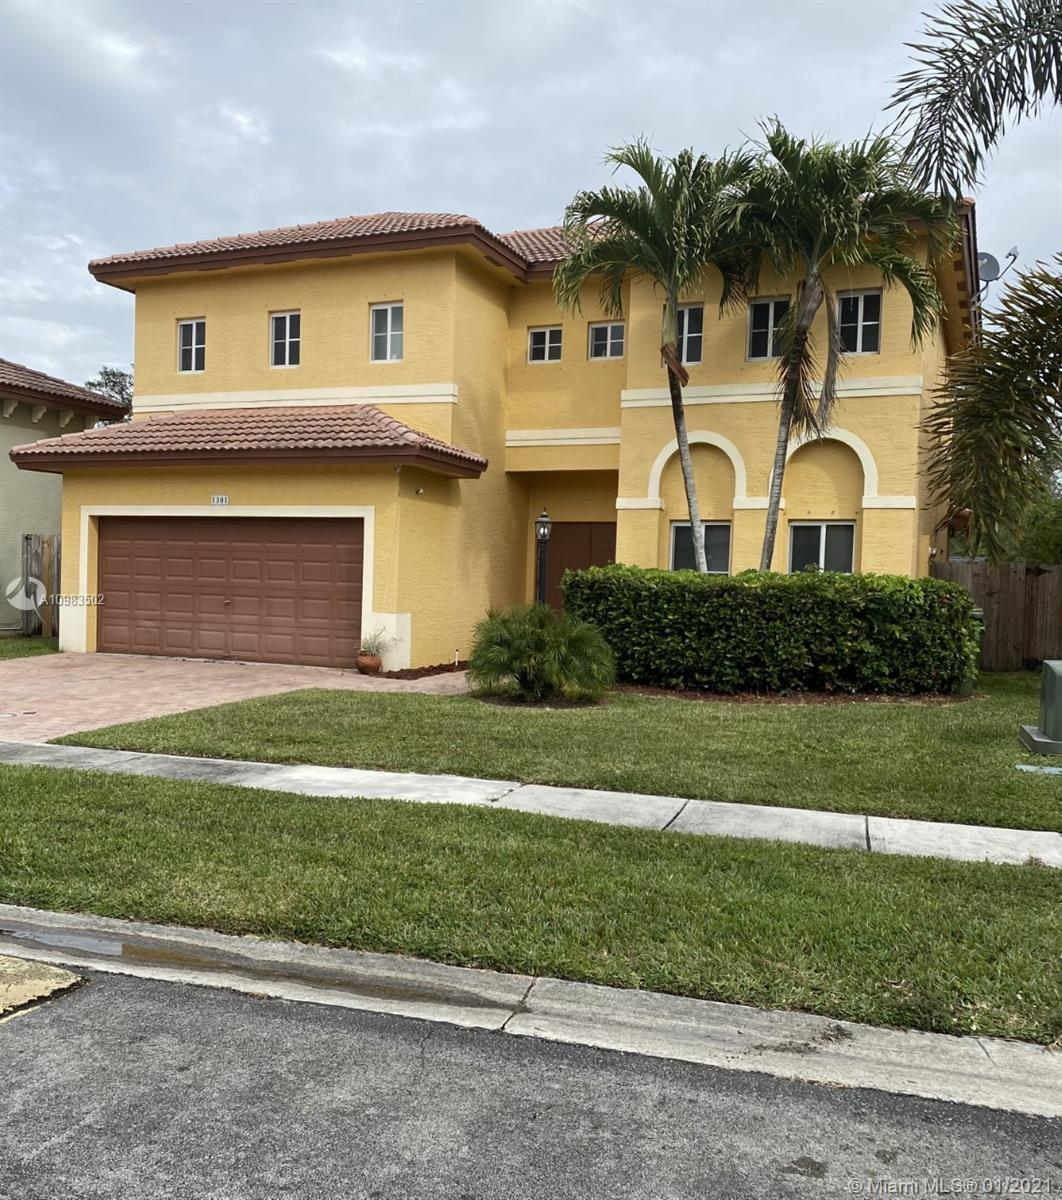 1301 NE 42nd Ave Property Photo - Homestead, FL real estate listing